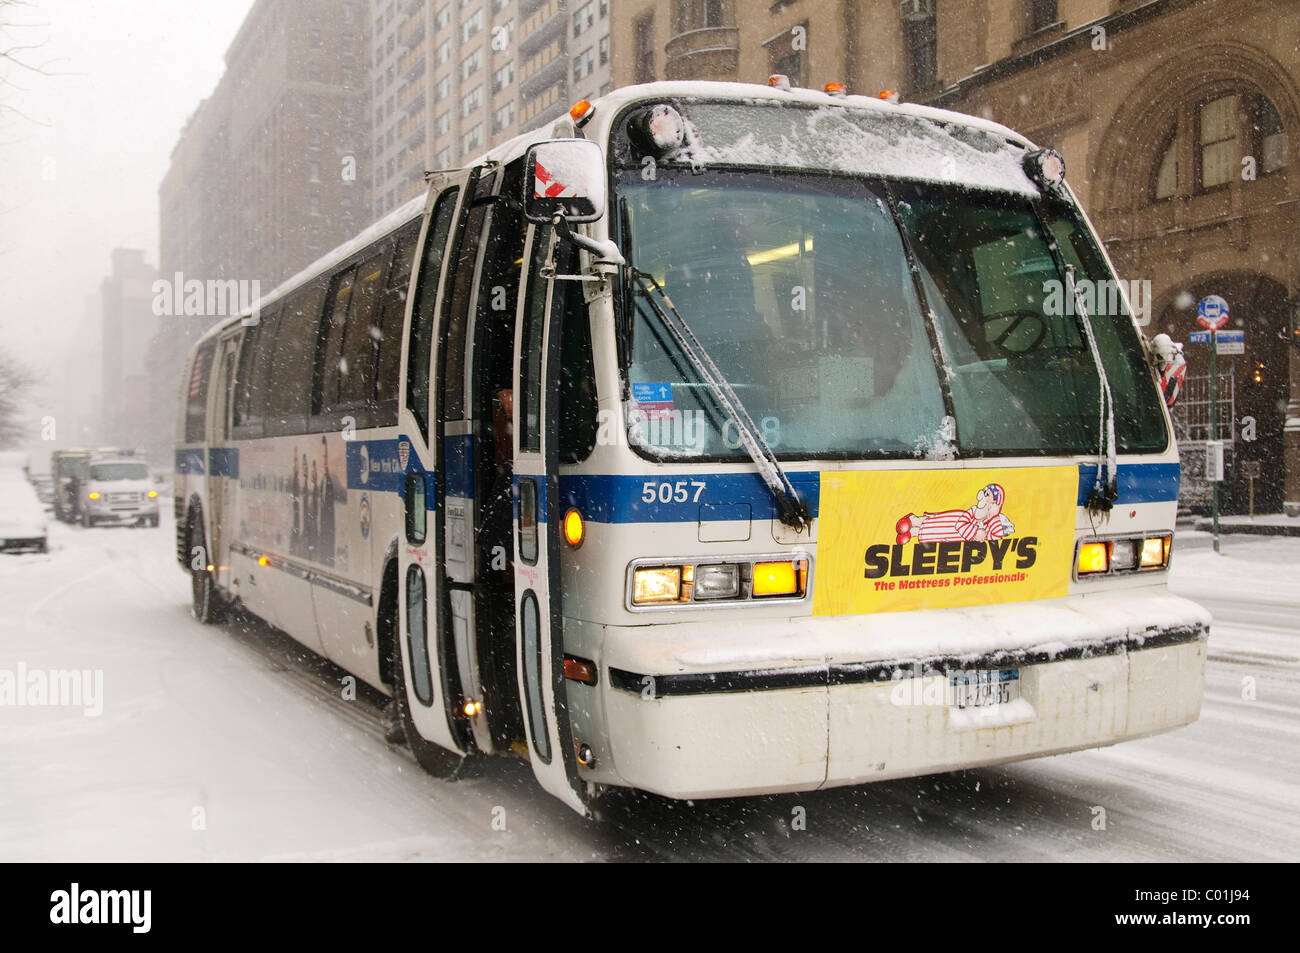 Mta Bus Stock Photos Mta Bus Stock Images Alamy